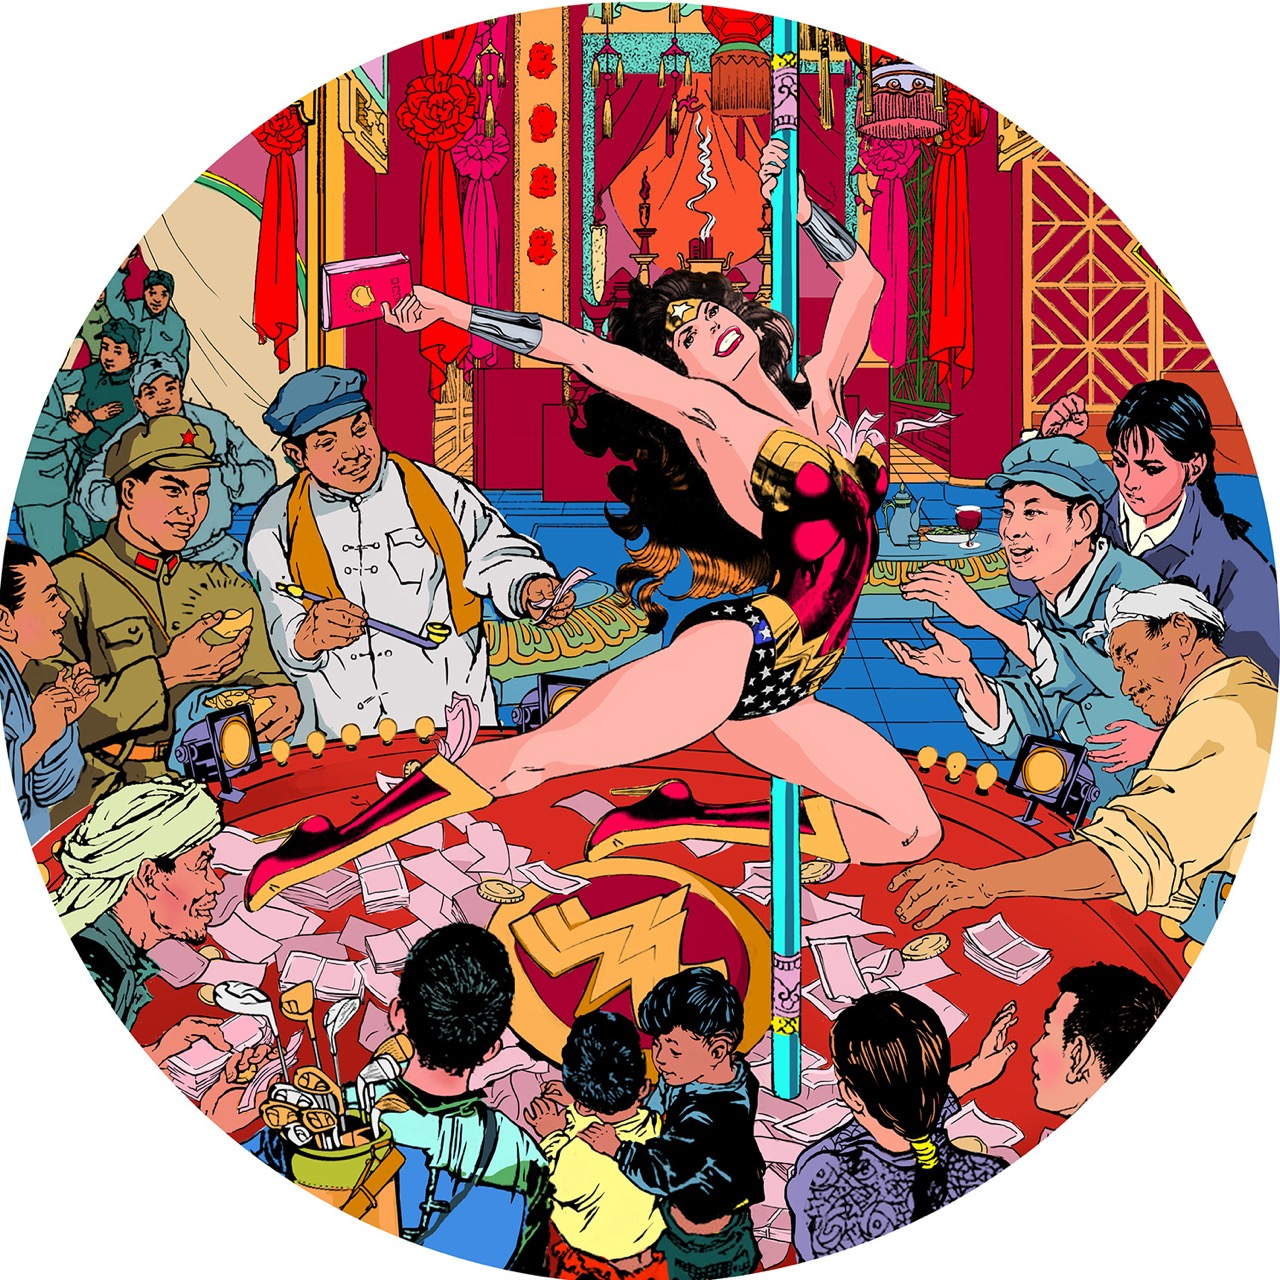 Jacky Tsai 'The Pole Dancer' (acrylic and gold leaf on linen; 51 inches diameter)